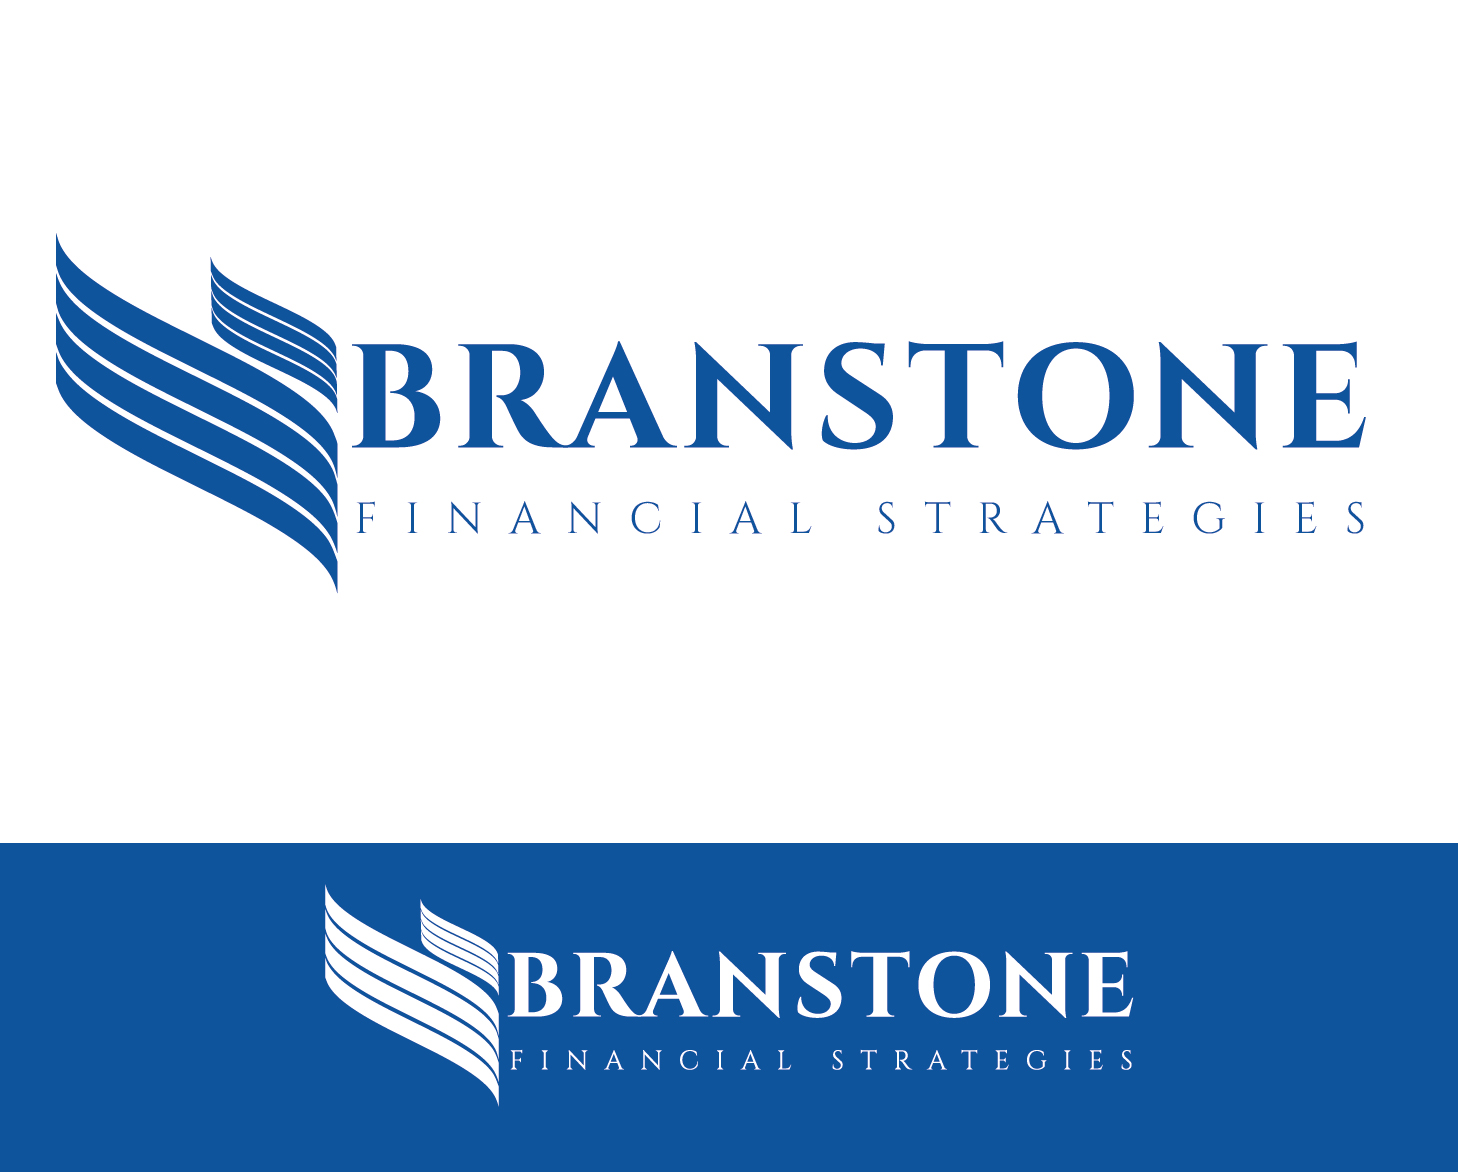 Logo Design by VENTSISLAV KOVACHEV - Entry No. 83 in the Logo Design Contest Inspiring Logo Design for Branstone Financial Strategies.